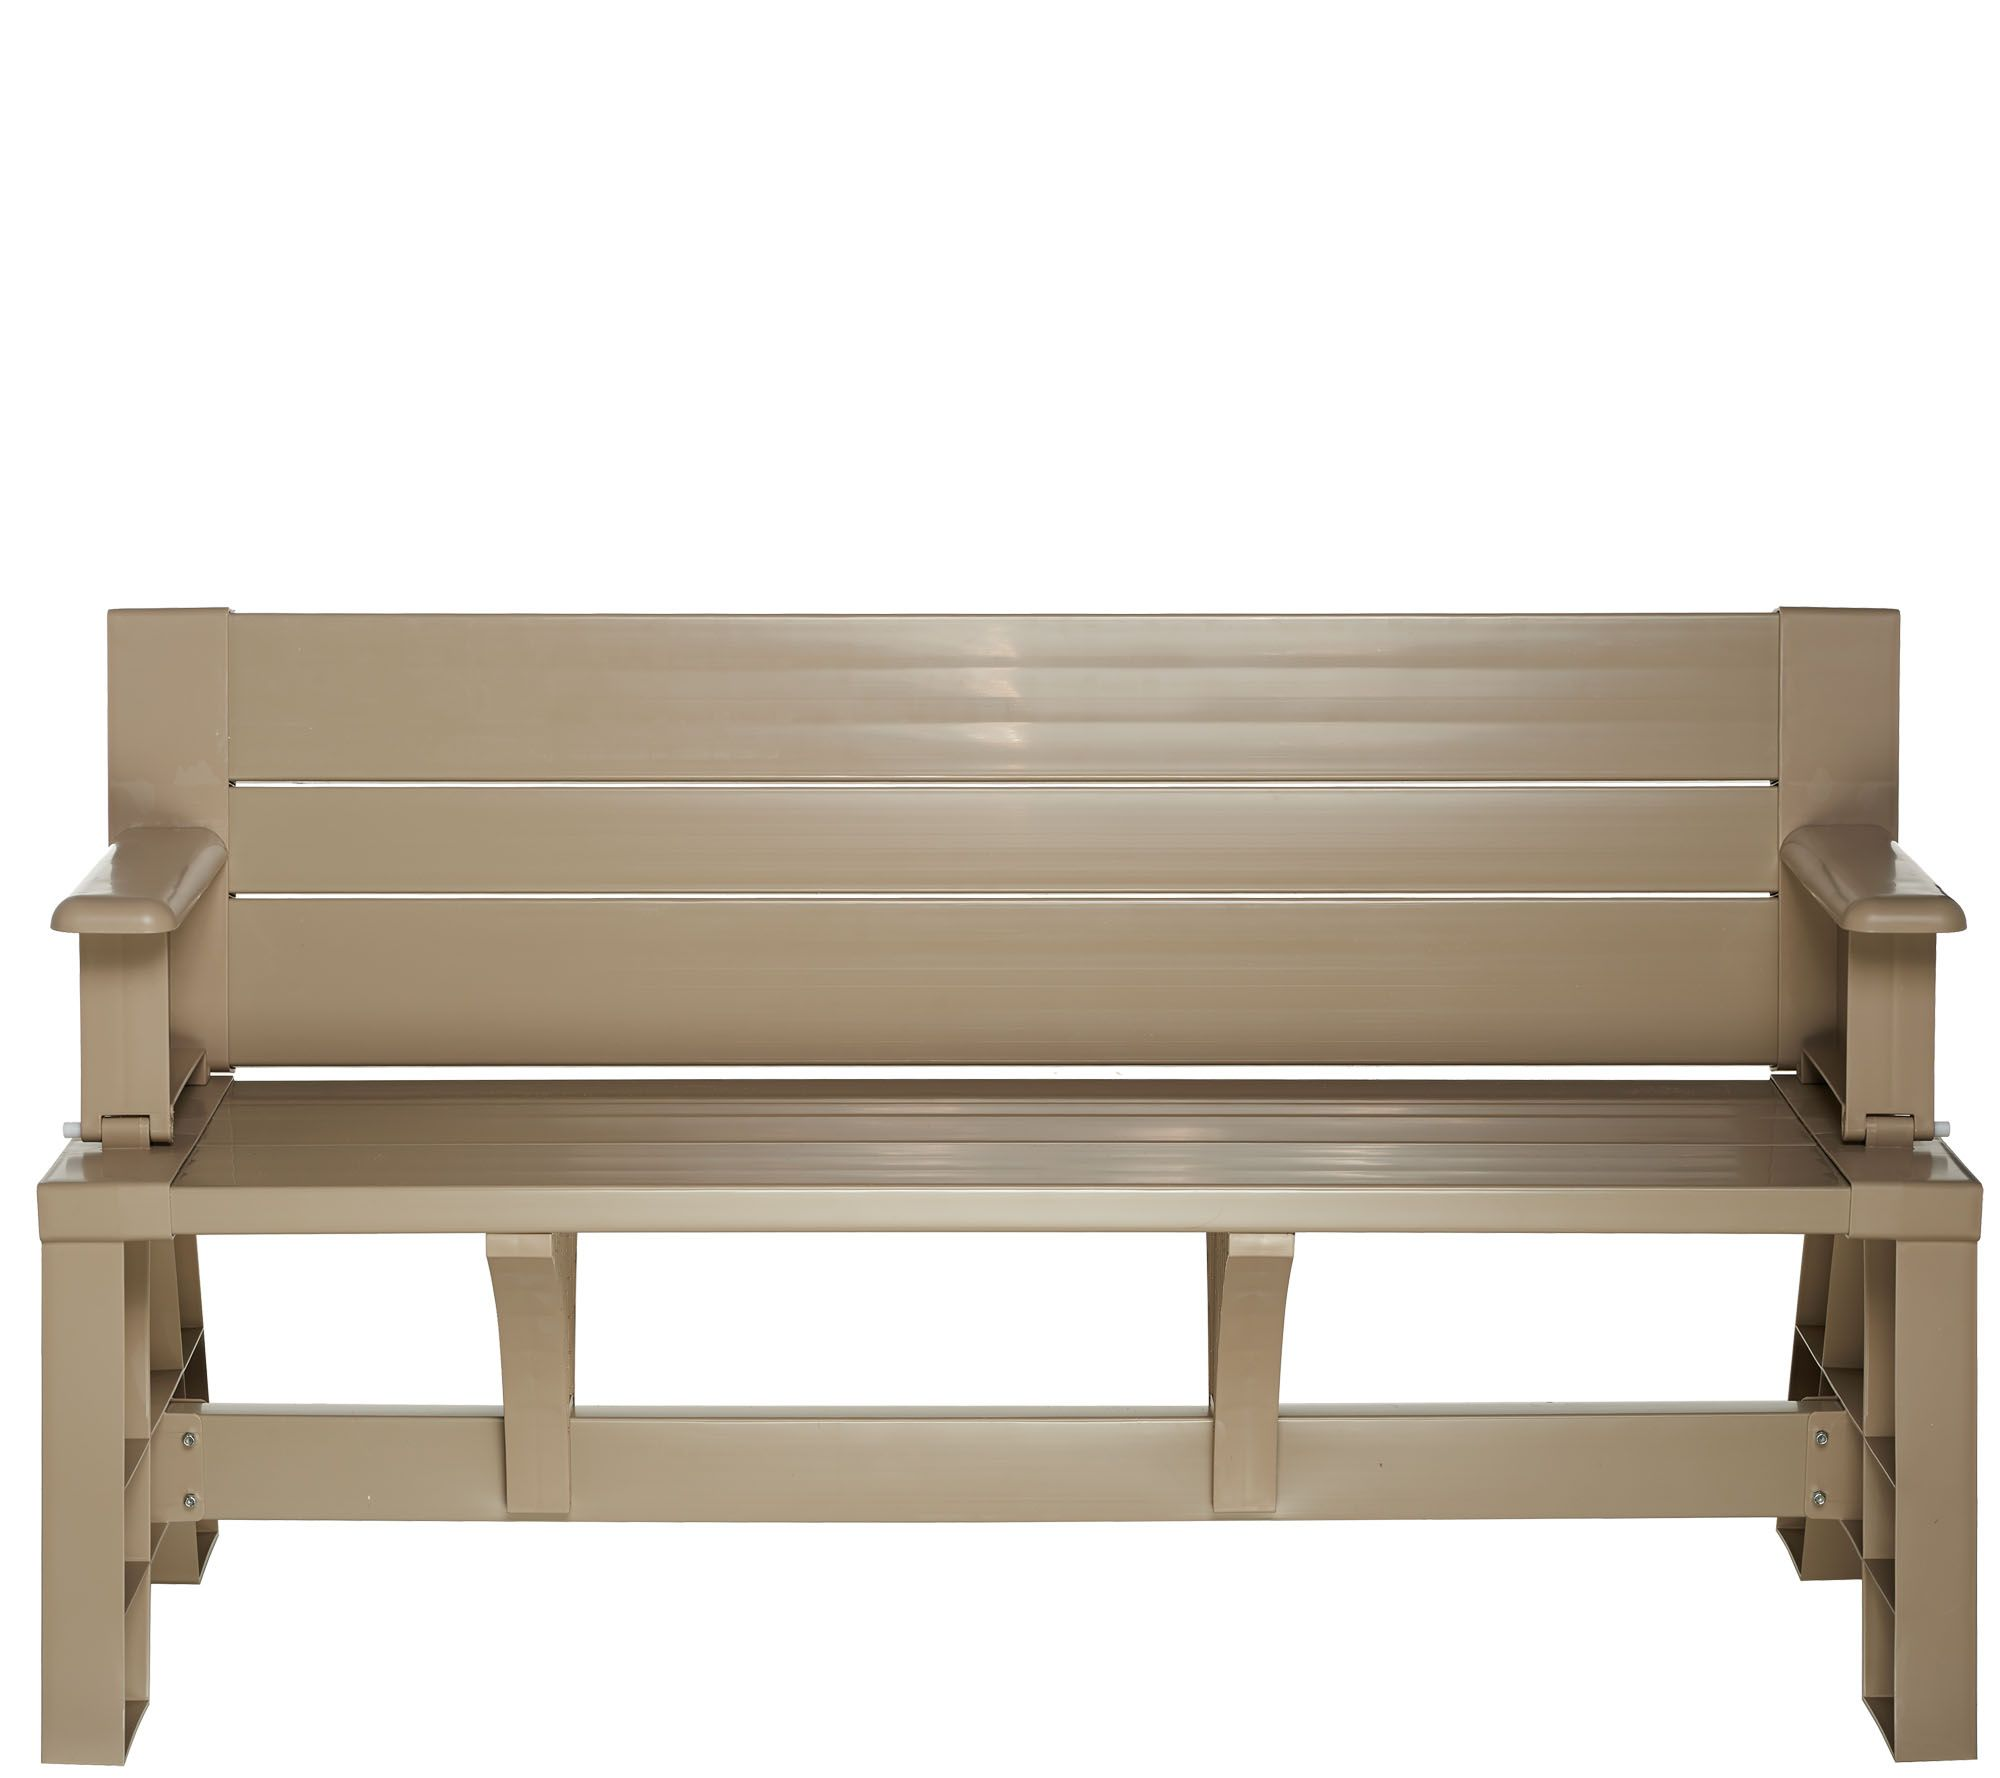 Convert-A-Bench Ultra III Outdoor 2-in-1 Bench-to-Table